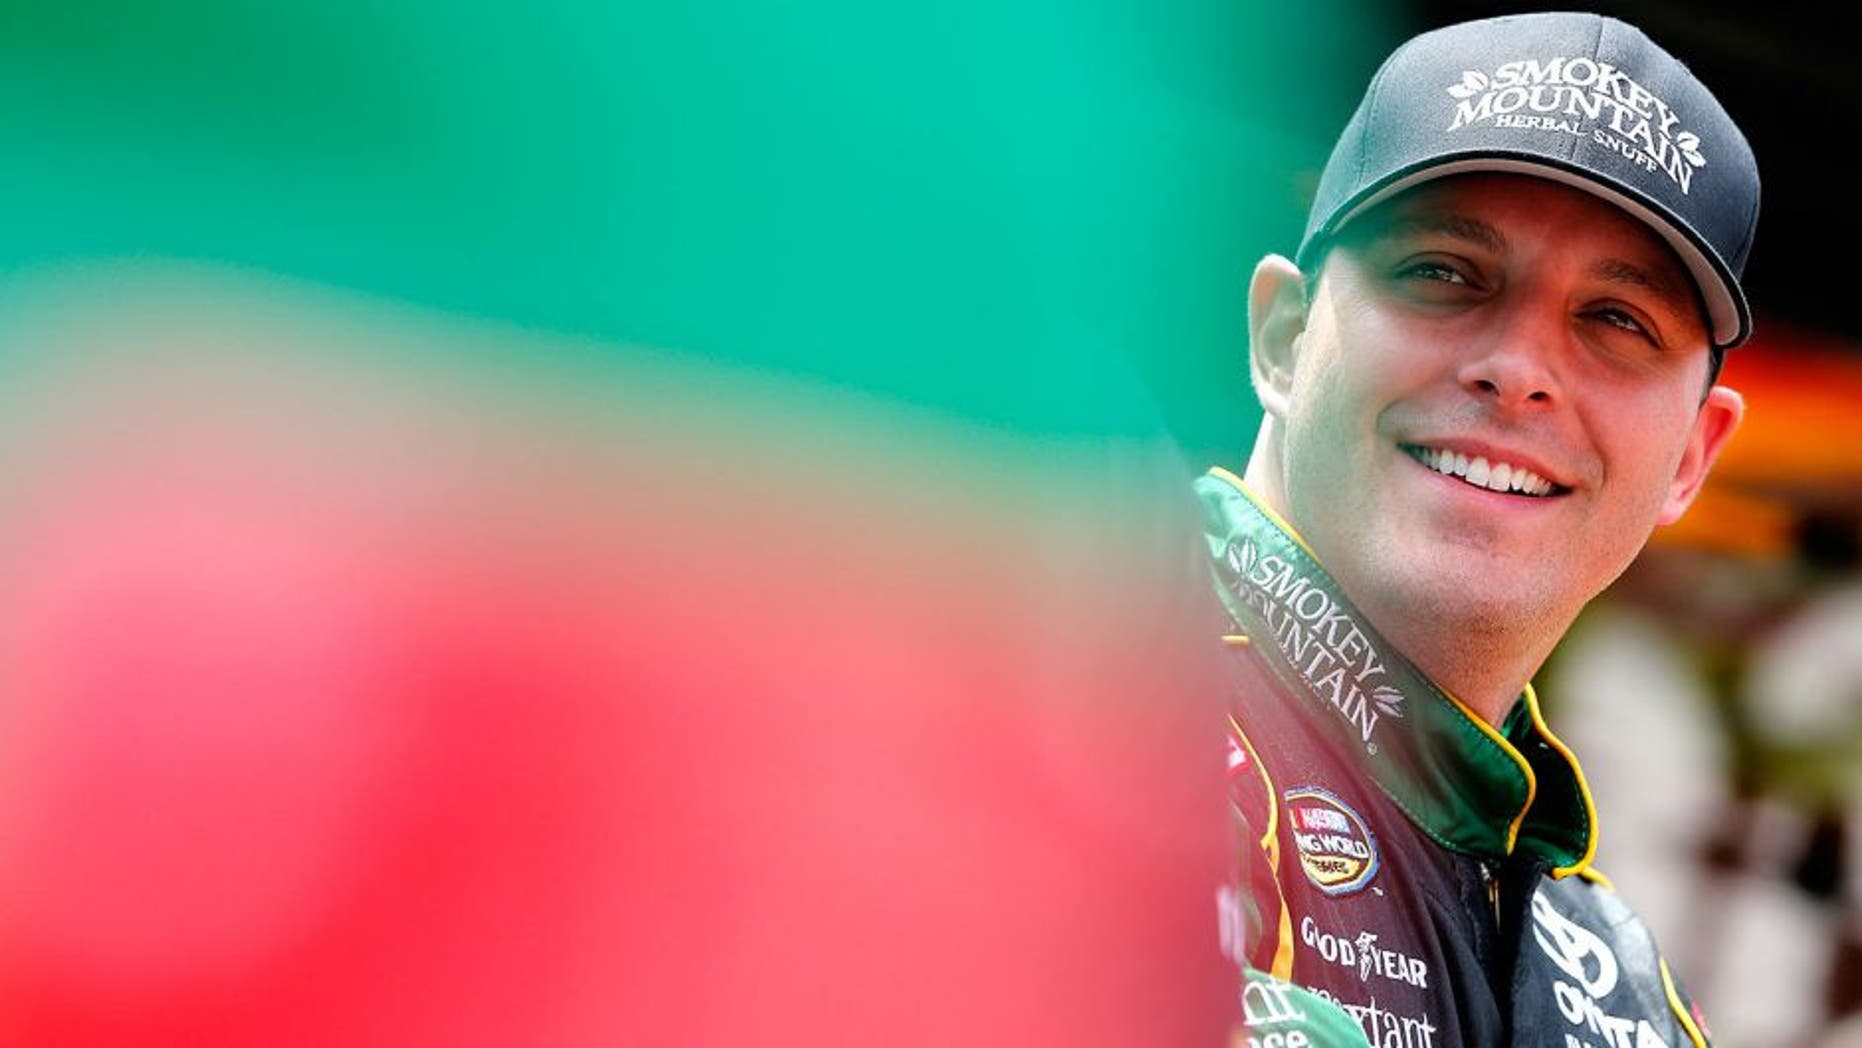 BRISTOL, TN - AUGUST 18: Johnny Sauter, driver of the #98 Smokey Mtn/Curb Records Toyota, stands in the garage during practice for the NASCAR Camping World Truck Series UNOH 200 race at Bristol Motor Speedway on August 18, 2015 in Bristol, Tennessee. (Photo by Brian Lawdermilk/NASCAR via Getty Images)